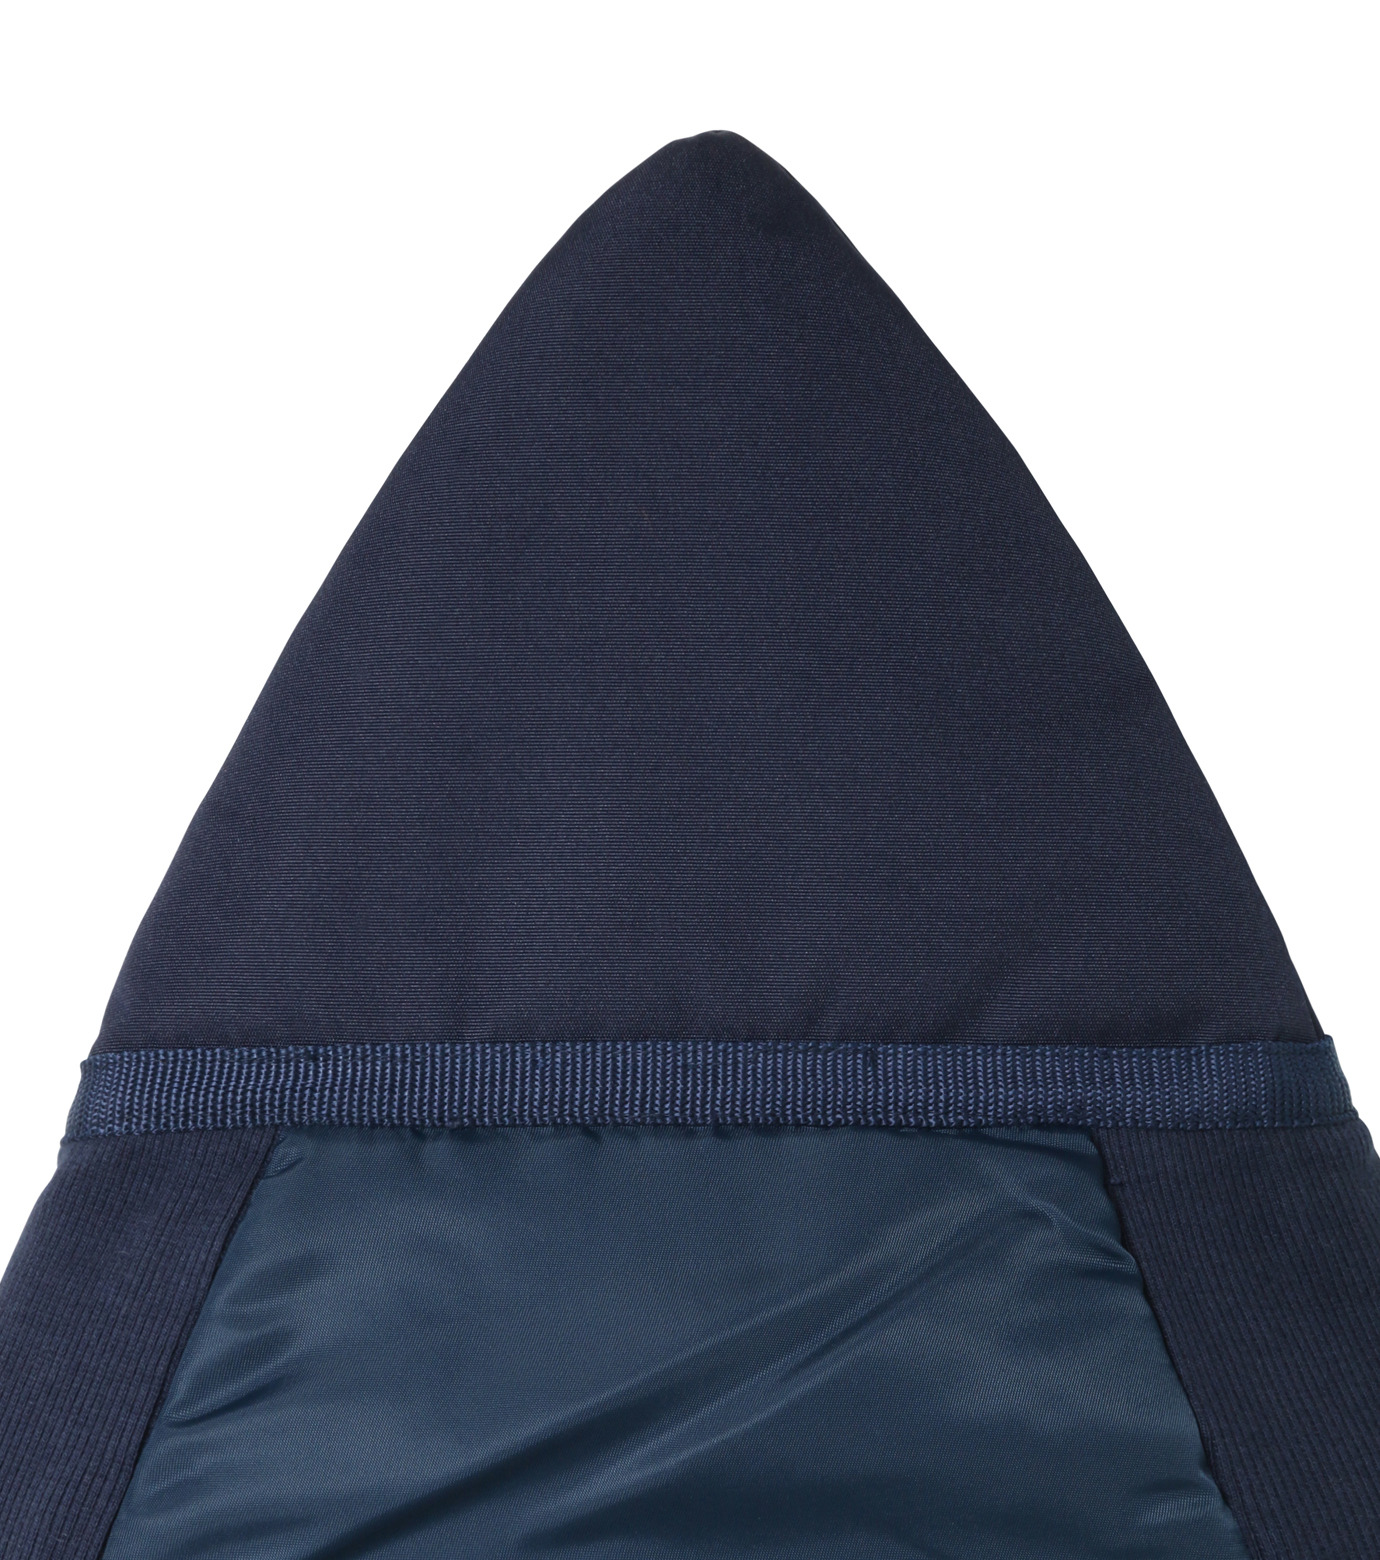 HEY YOU !(ヘイユウ)のSurfboard Jacket Long-NAVY(サーフ/OUTDOOR/surf/OUTDOOR)-18S90012-93 拡大詳細画像2